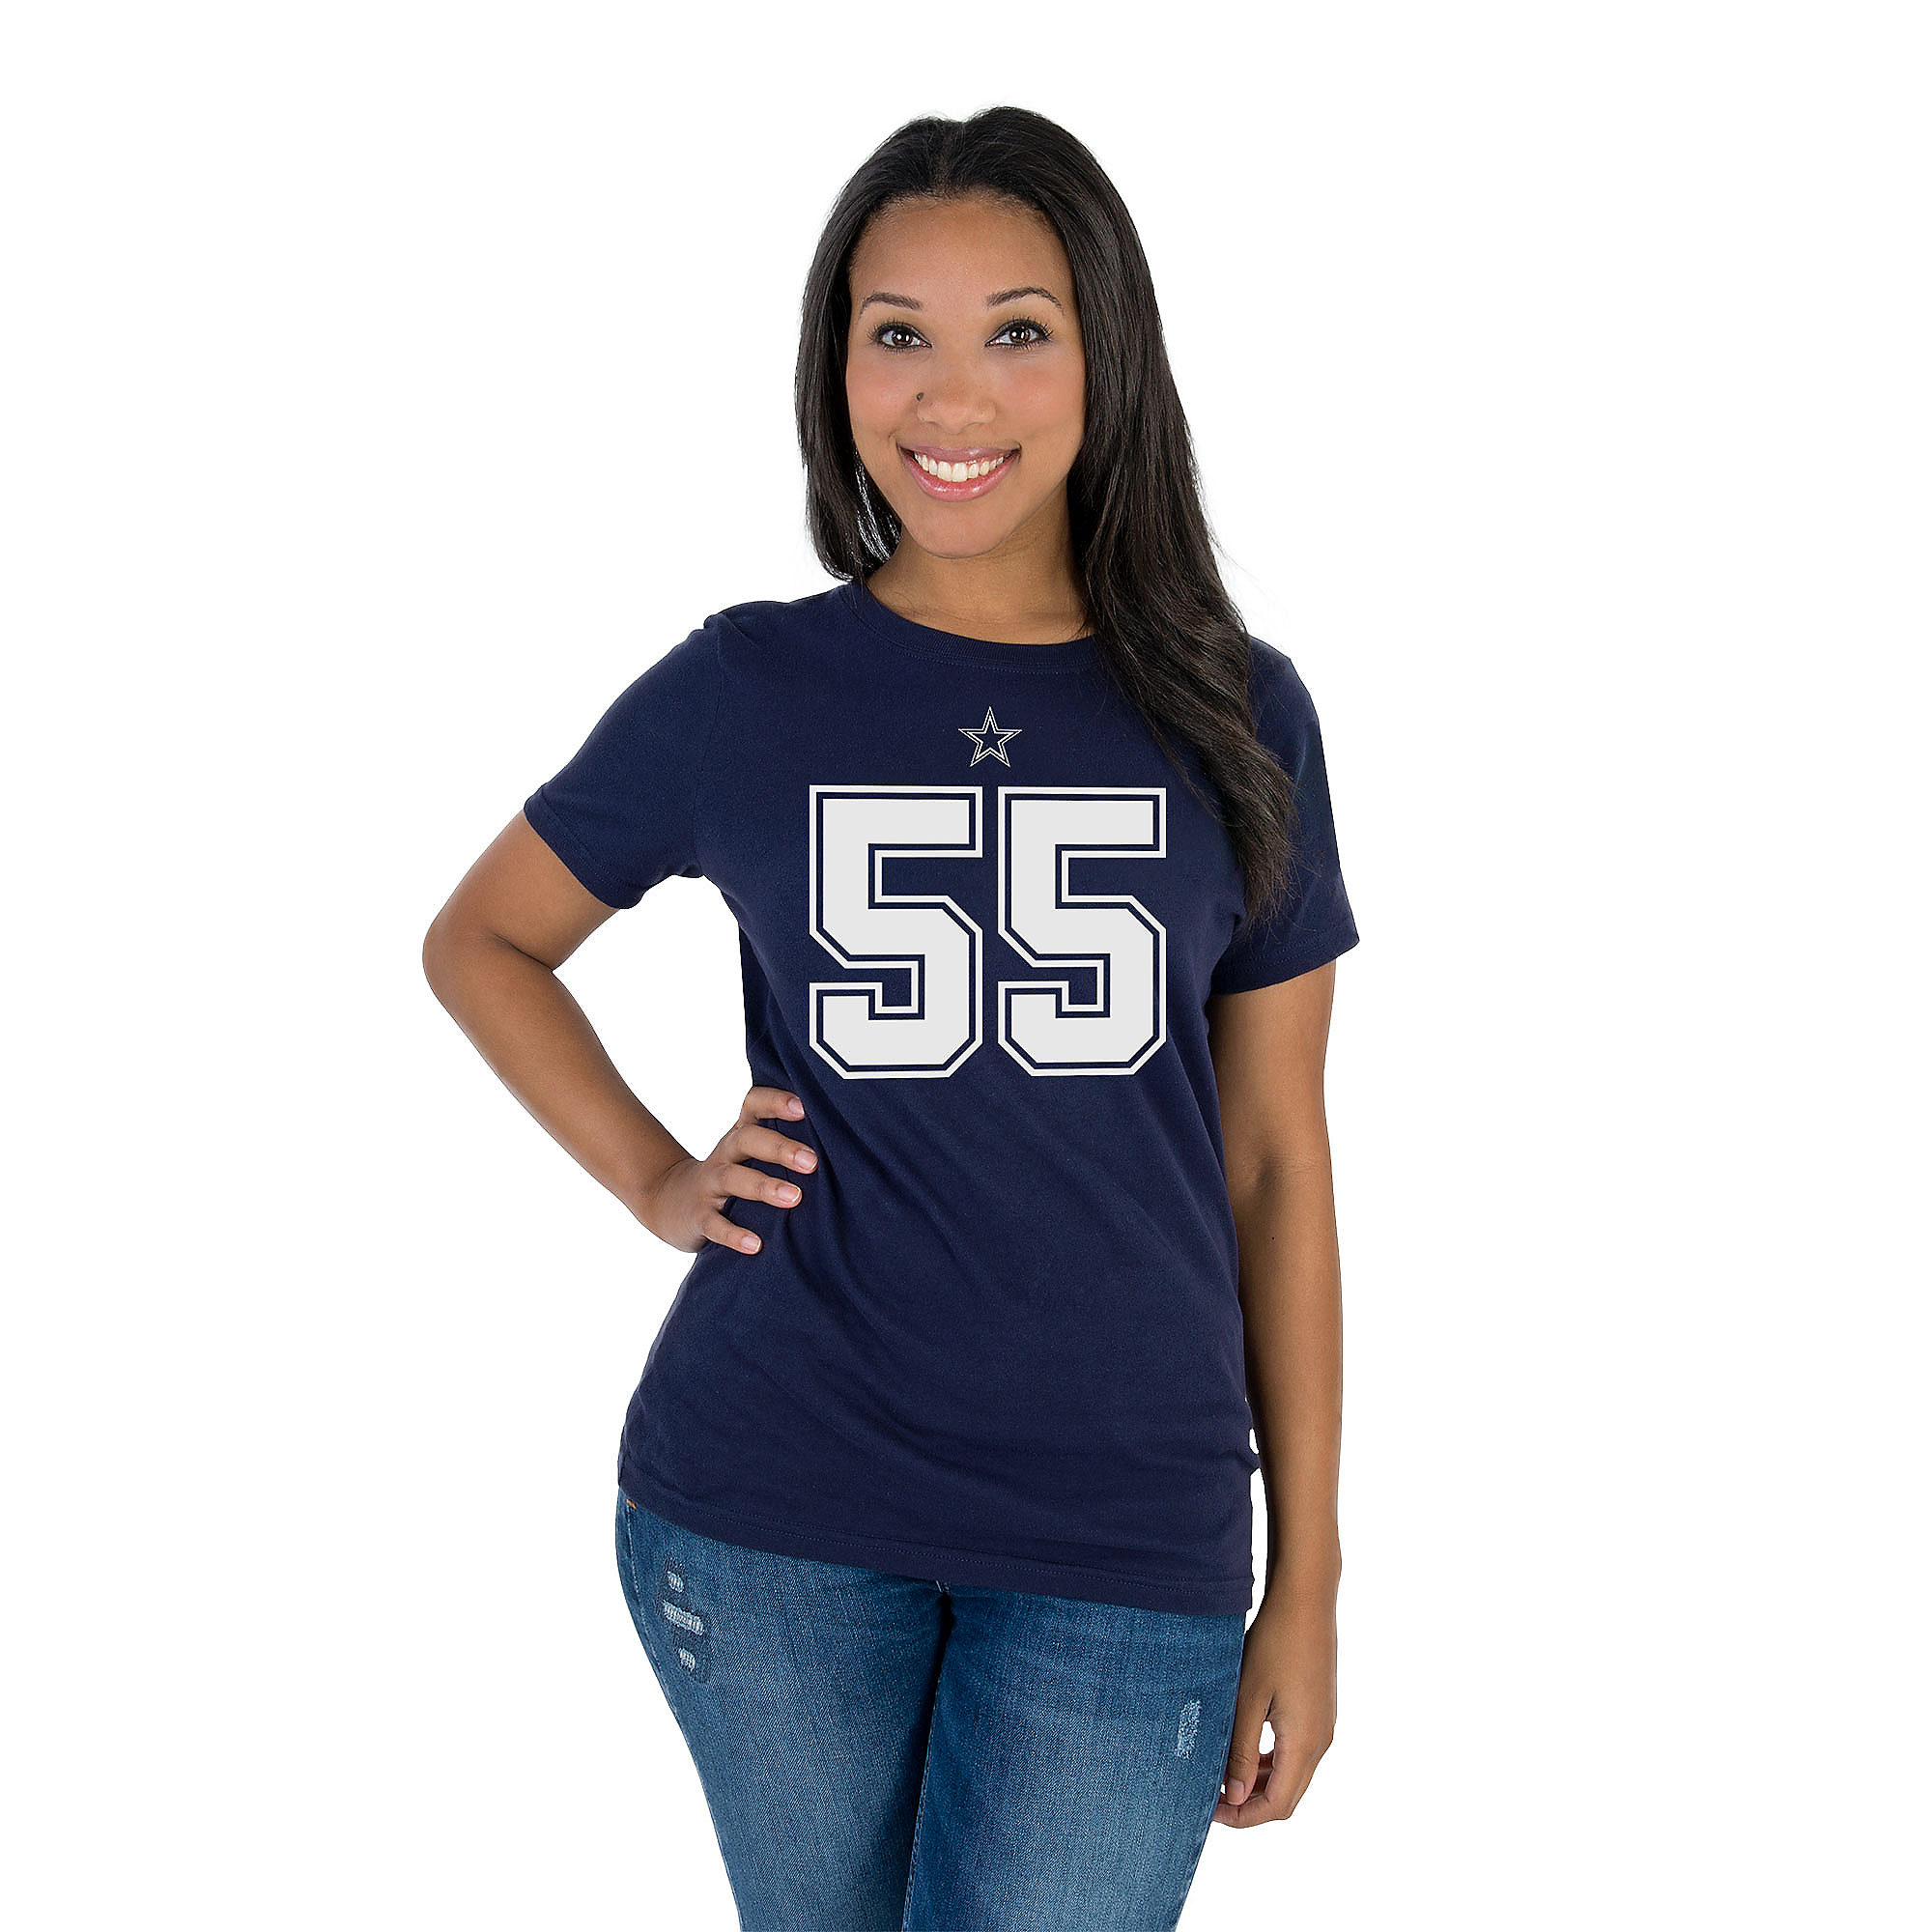 44abc8779 Dallas Cowboys Womens Leighton Vander Esch #55 Authentic Name & Number Tee